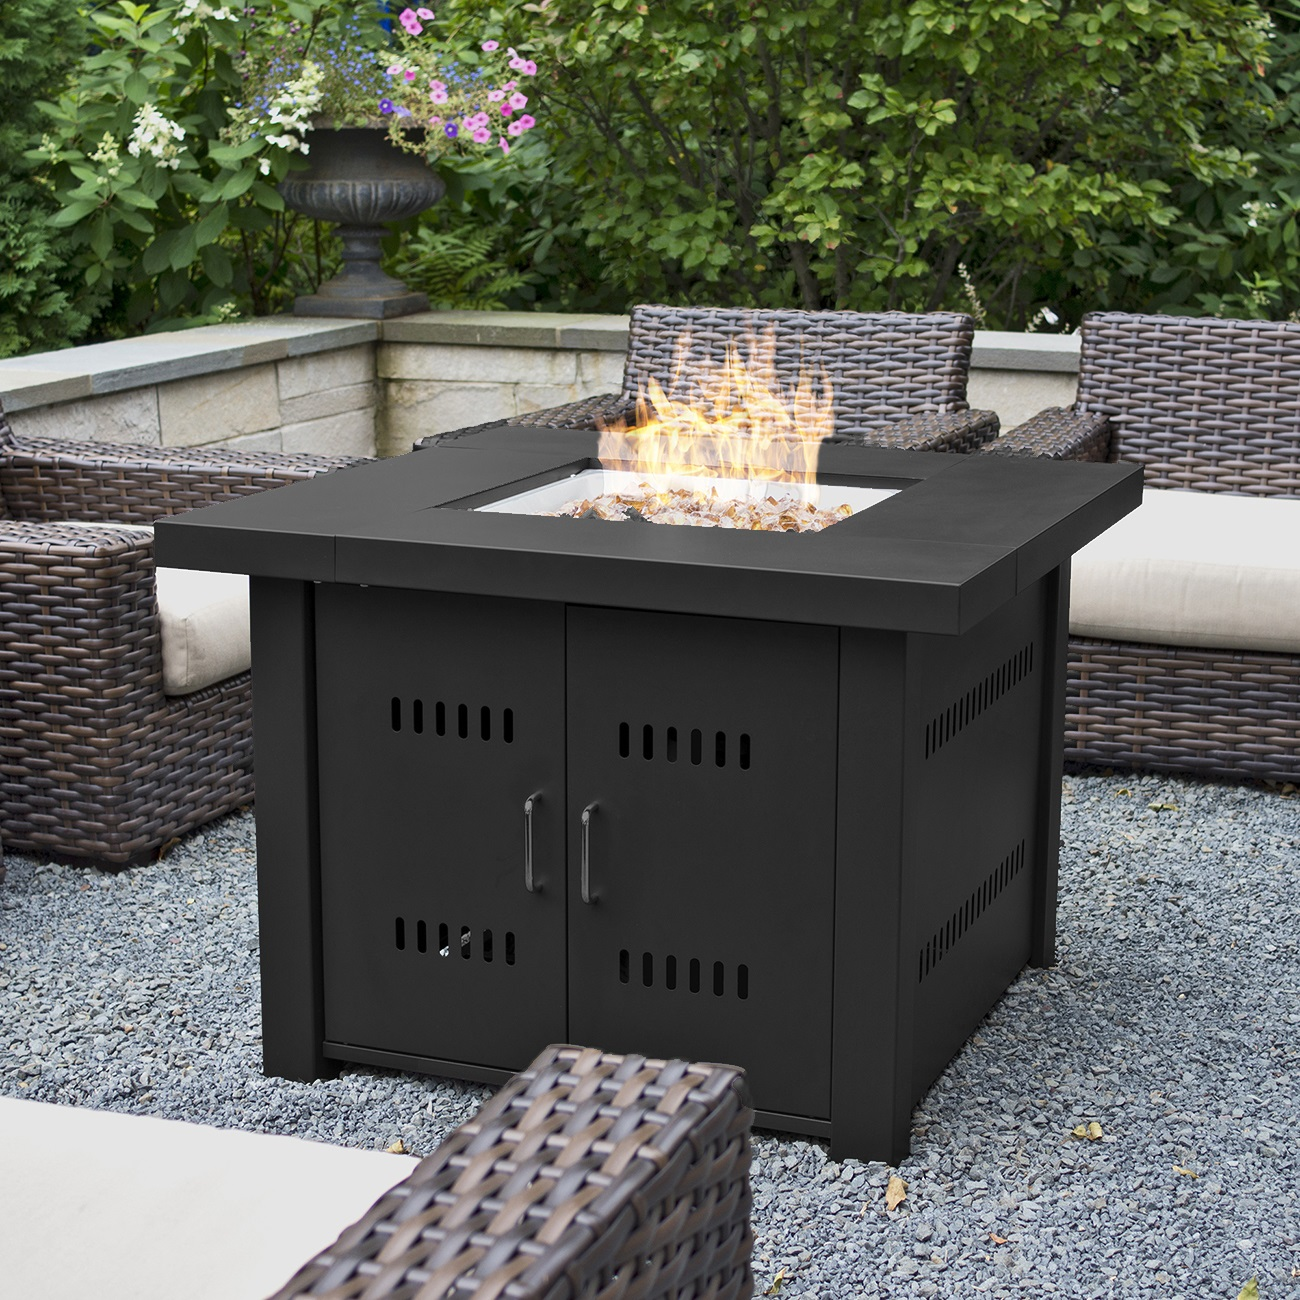 Belleze 40,000BTU Outdoor Patio Propane Gas Fire Pit Table W/ Fire Glass LG  Gas, Black   Walmart.com